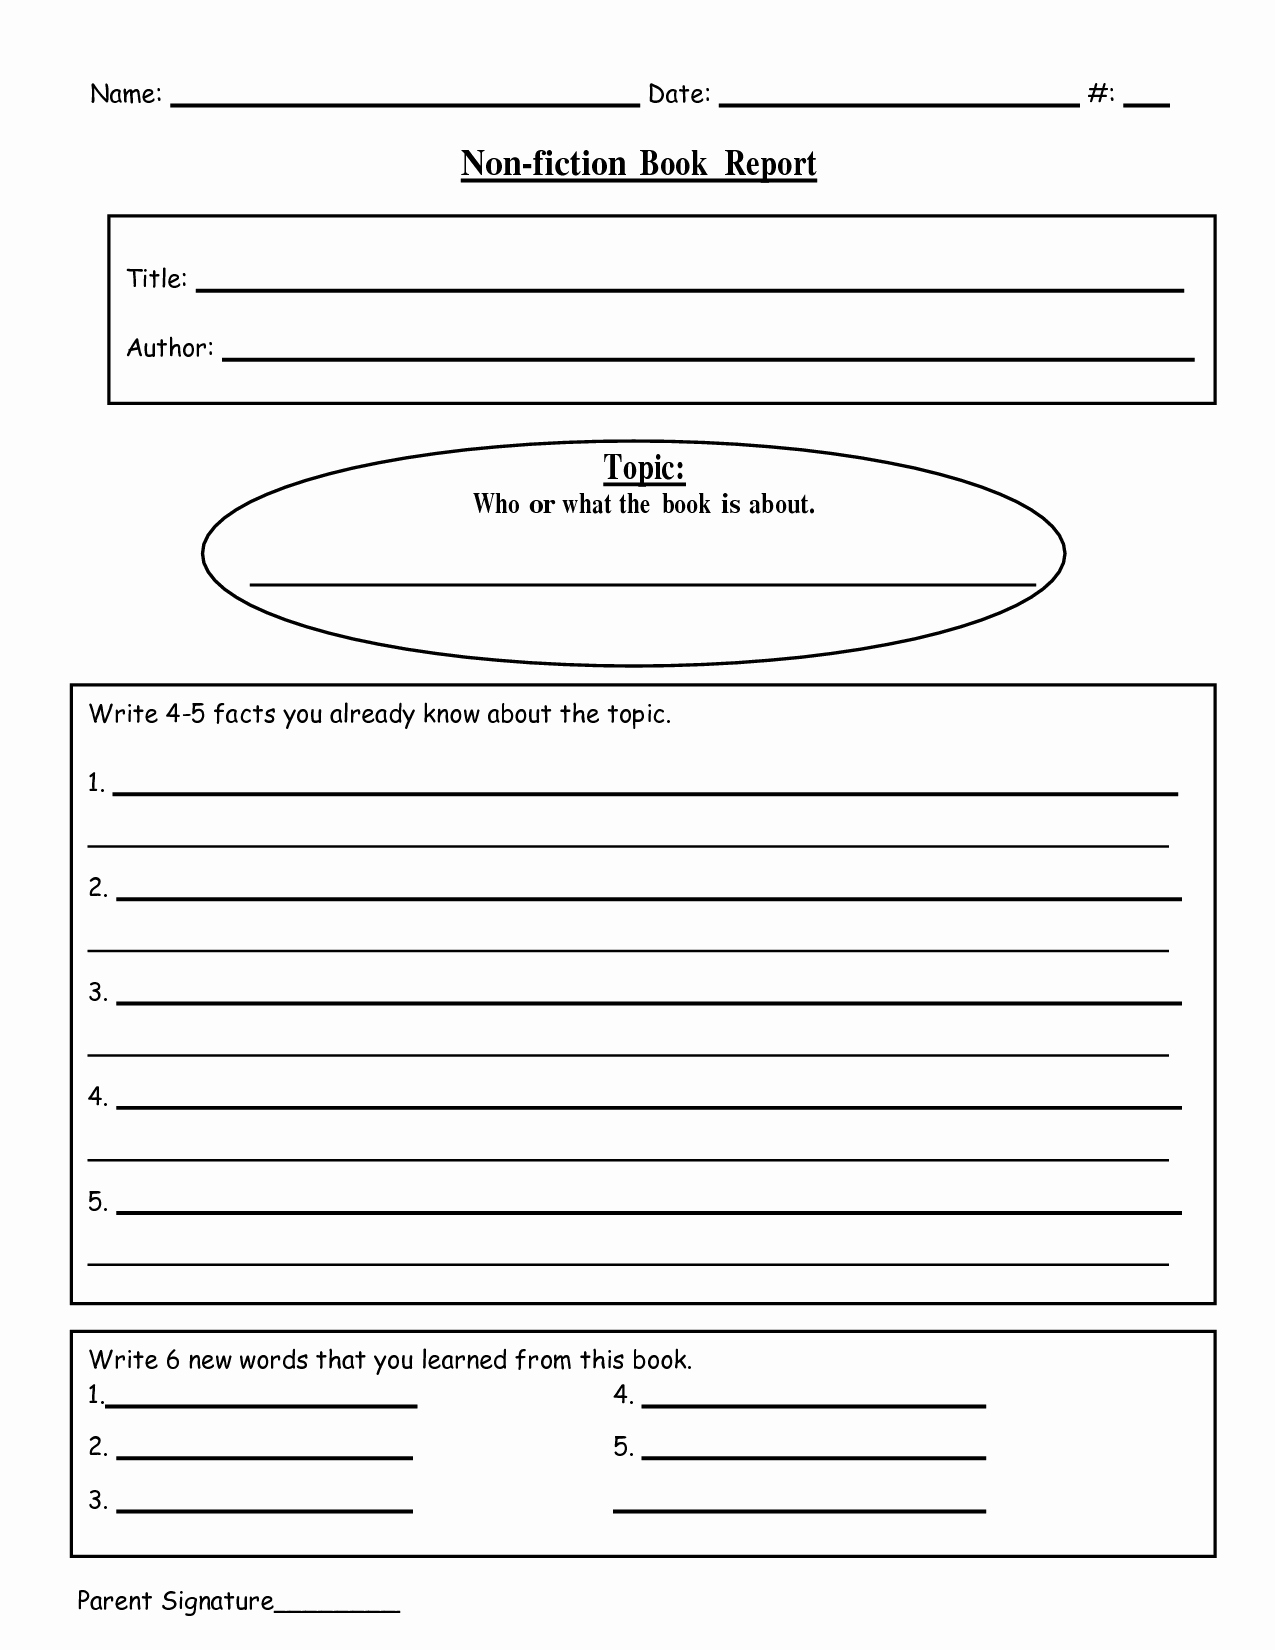 Book Report Examples 5th Grade Awesome Free Printable Book Report Templates Non Fiction Book Reportc School